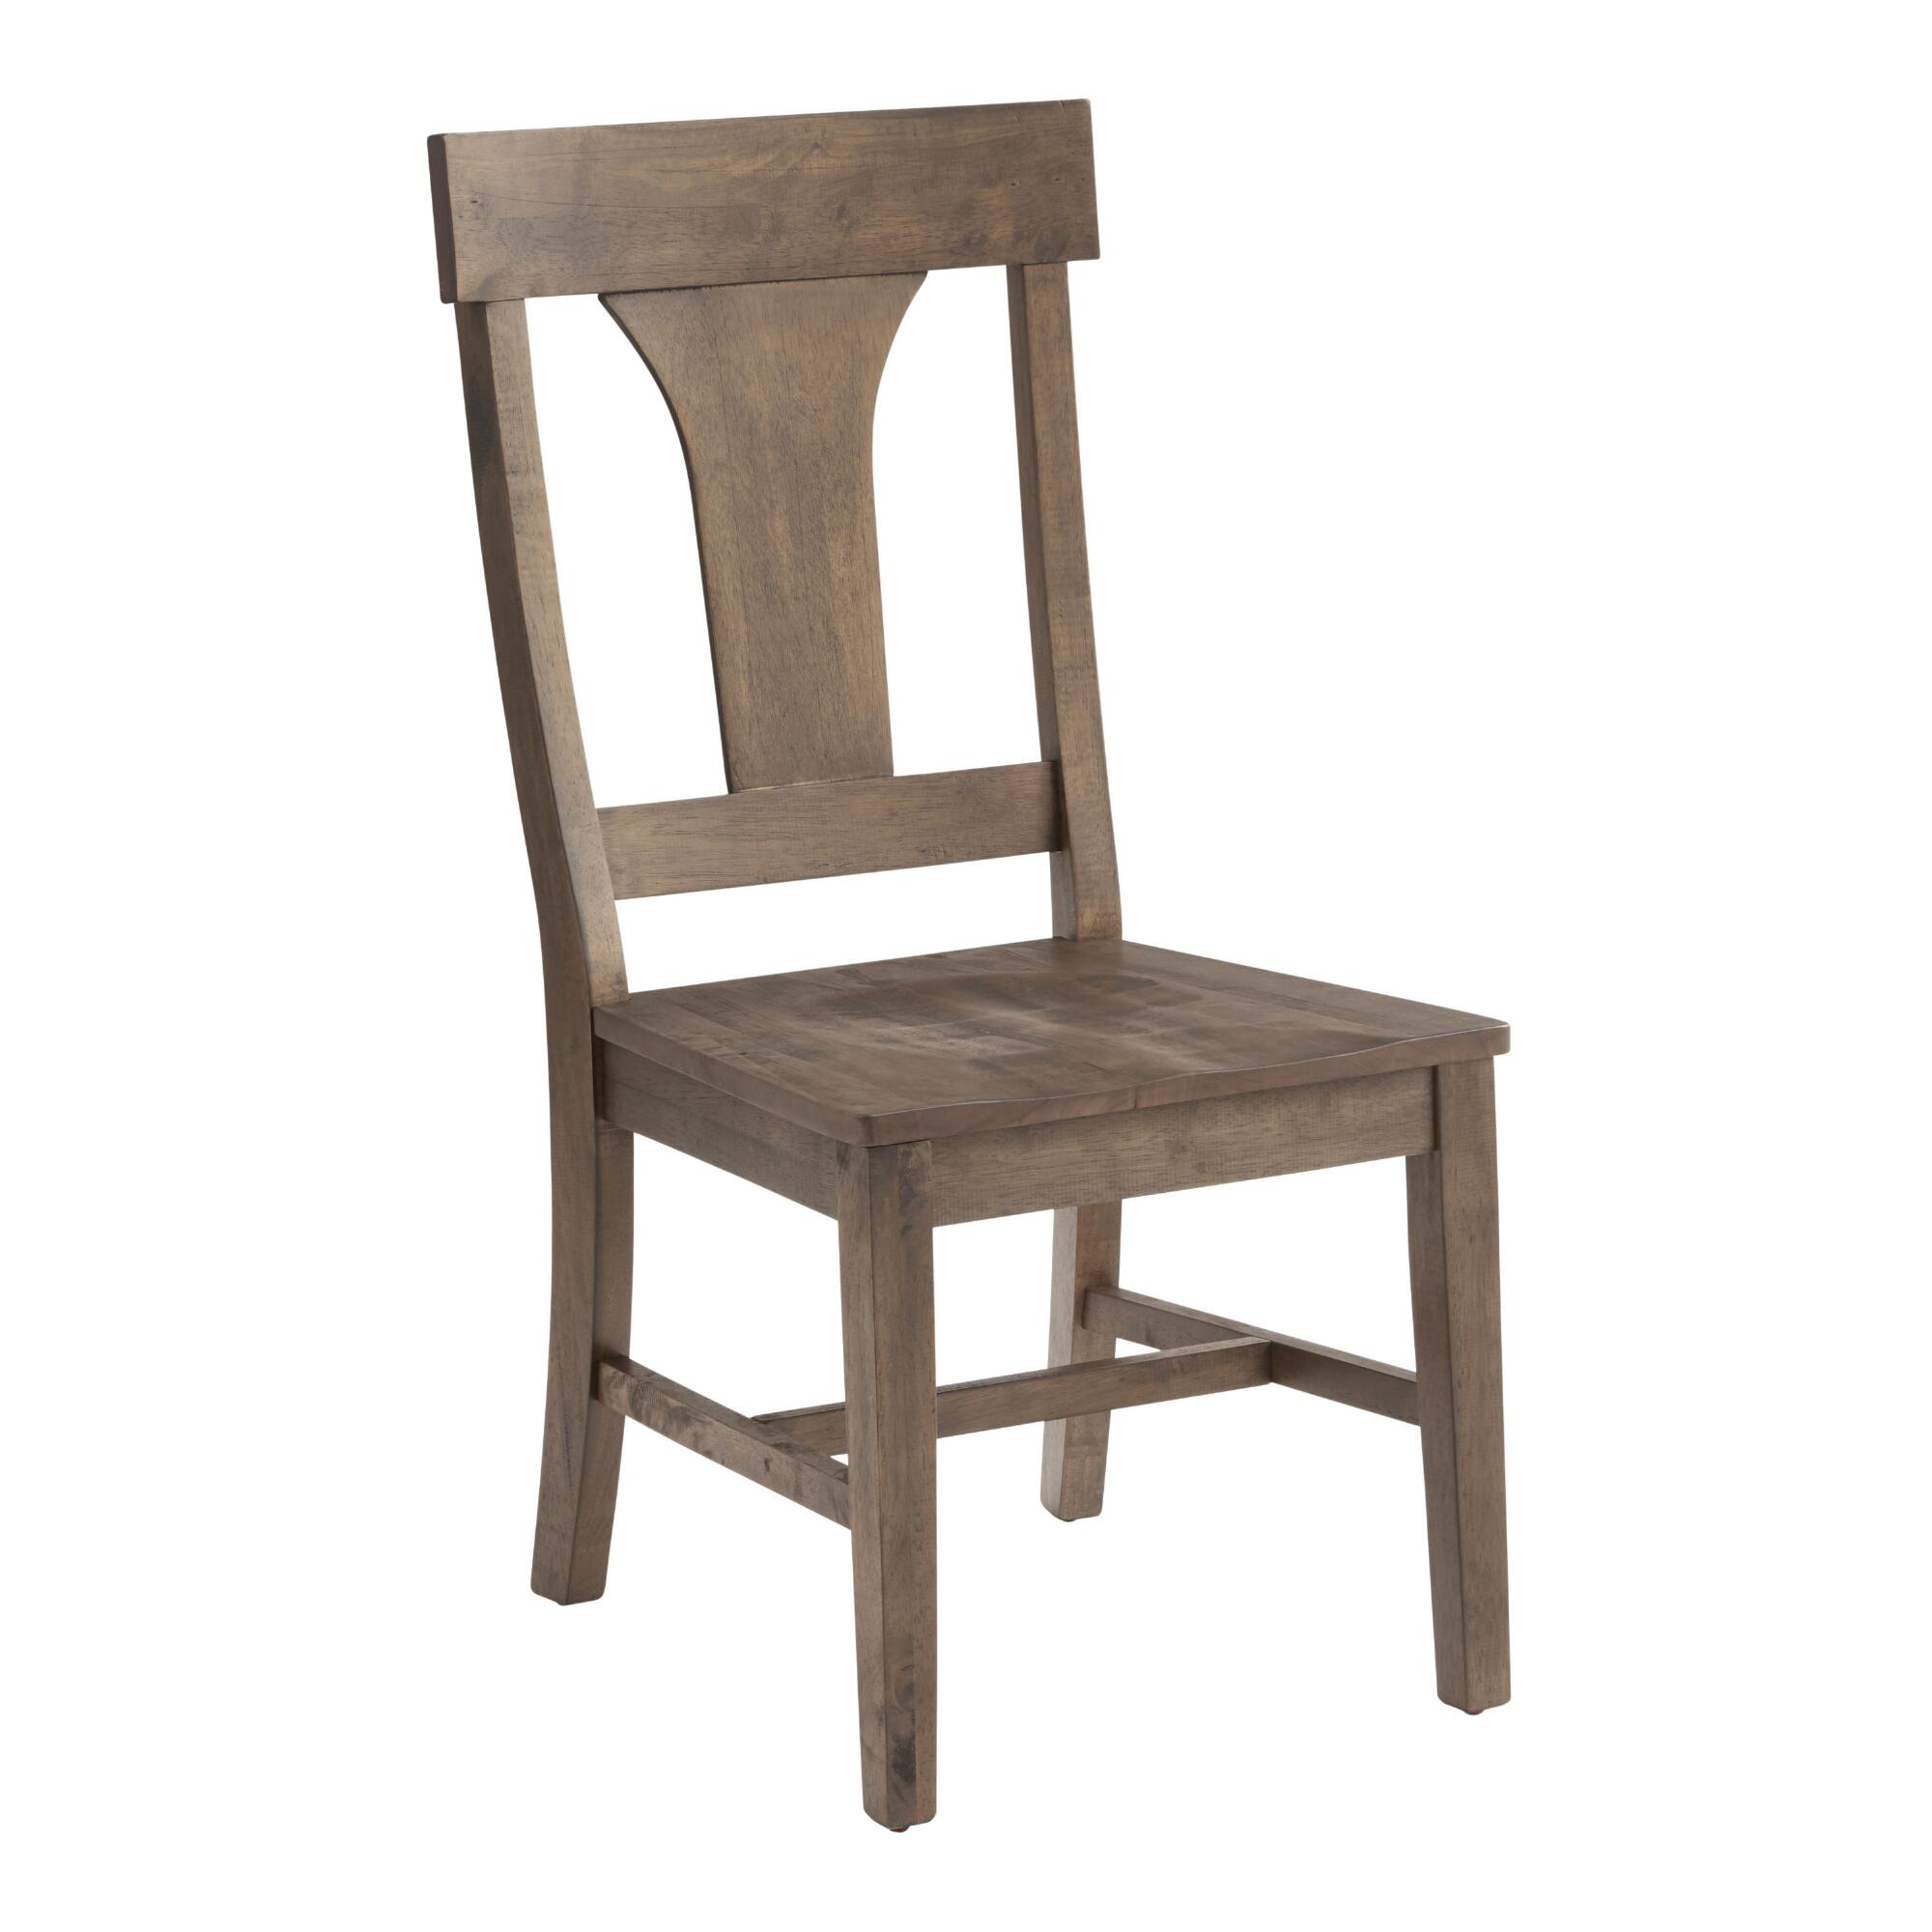 Rustic Wood Brinley Dining Chairs Set of 2 | World Market